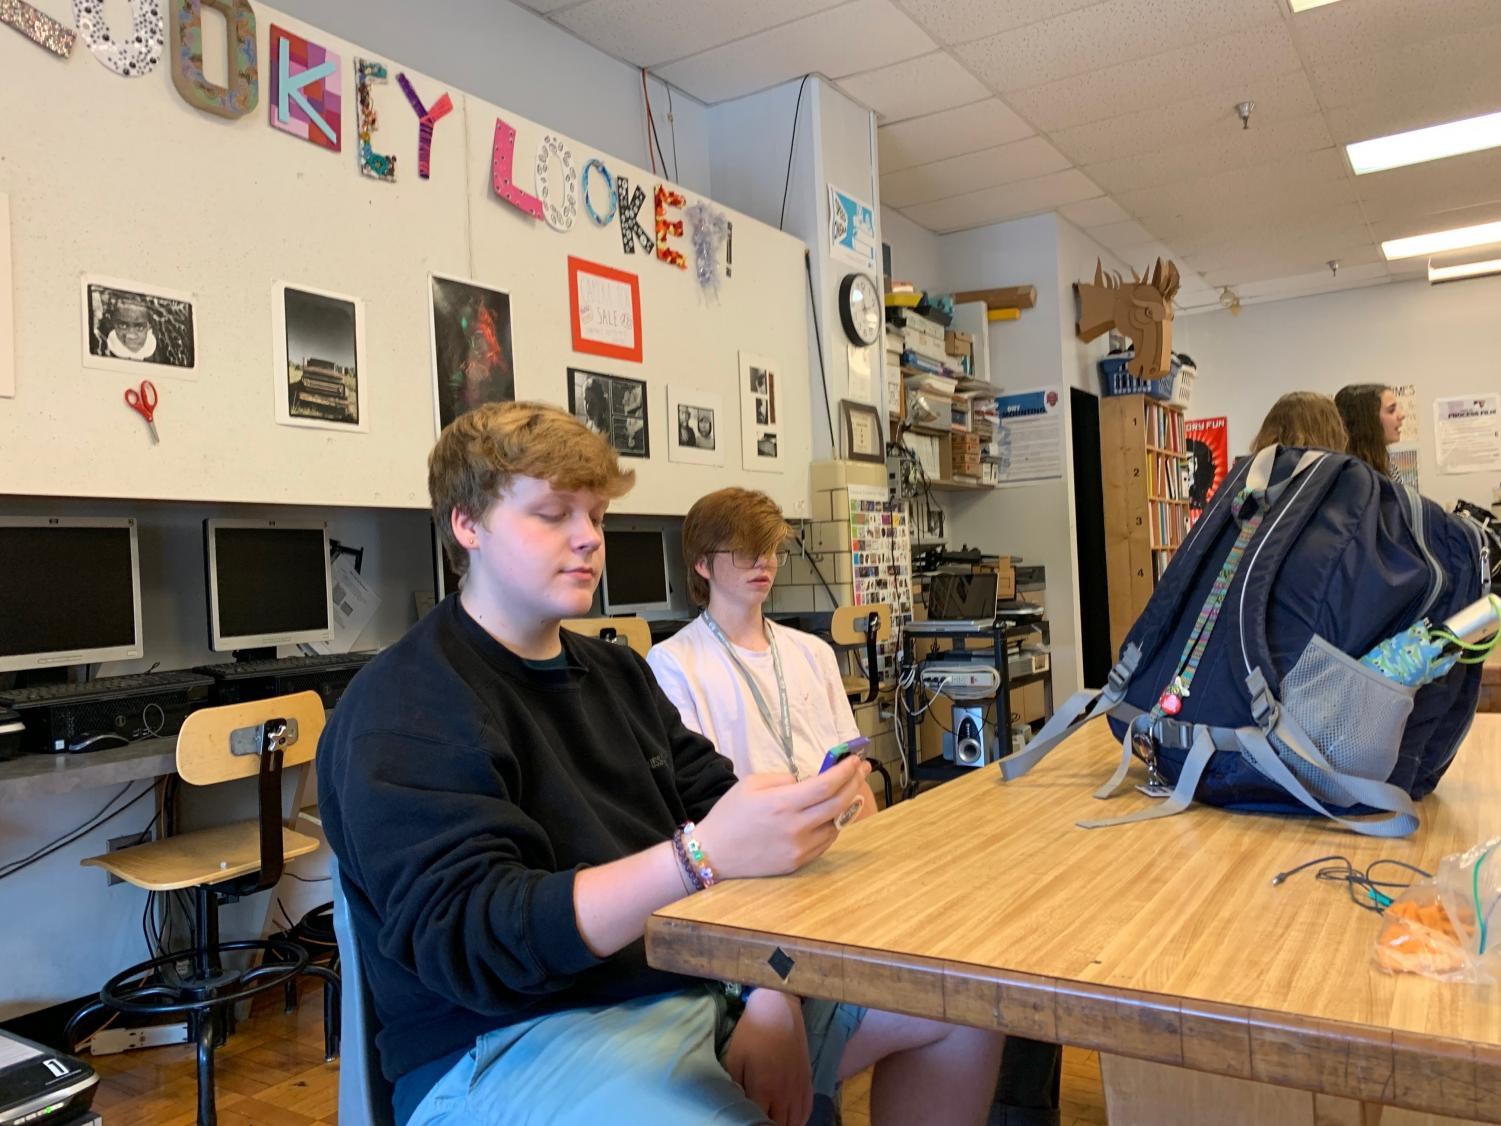 Students work on assignments on personal cell phones. Photo by Zoe Paige